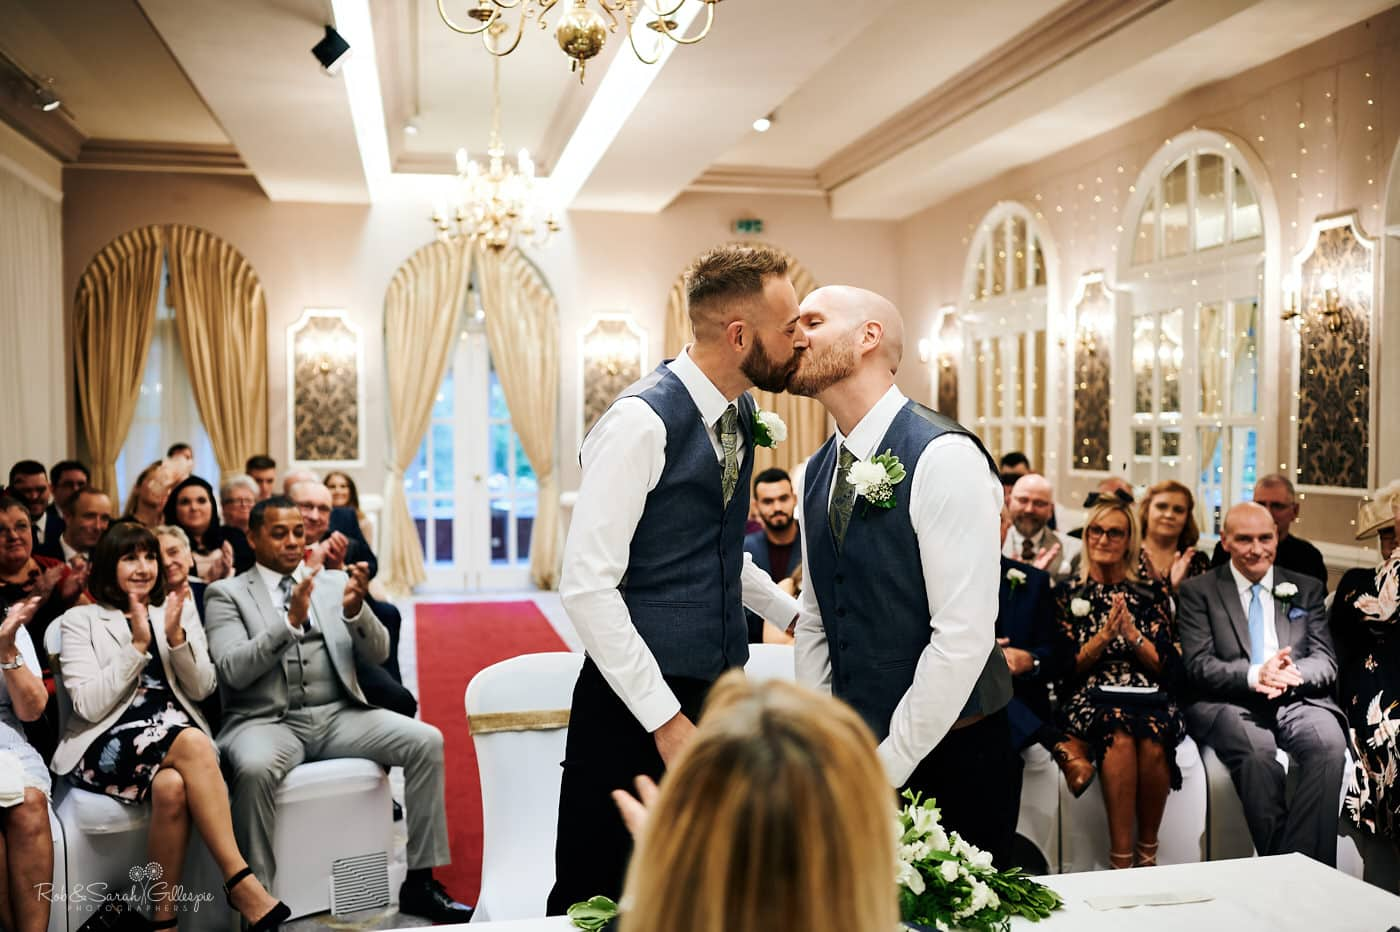 Two grooms kiss during wedding ceremony at Moor Hall Hotel